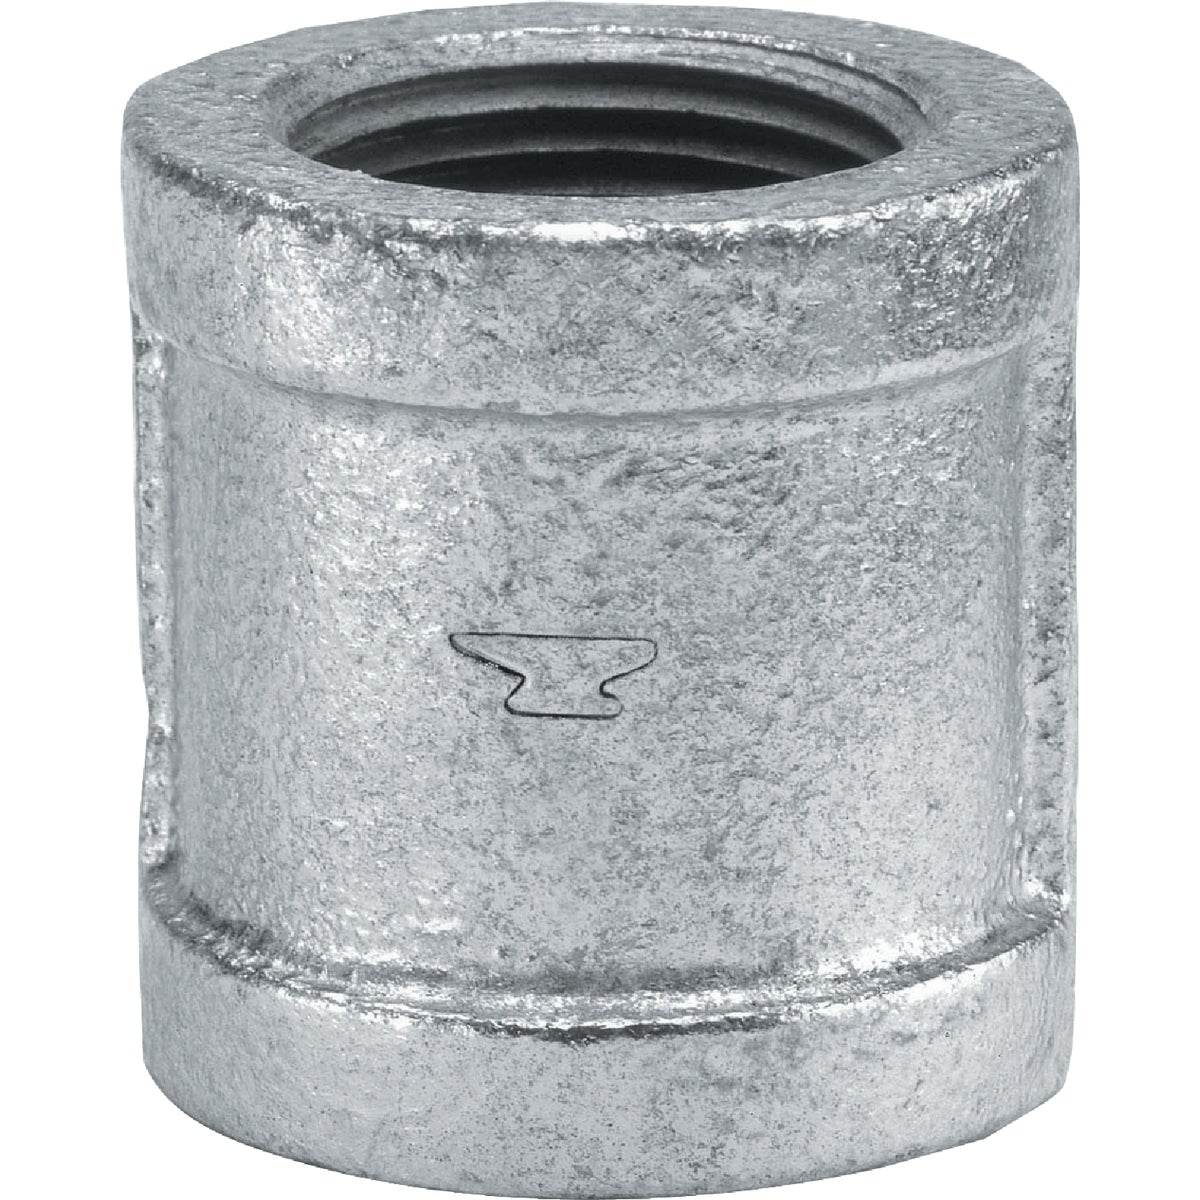 "1/4"" GALV COUPLING - 8700133450 by Anvil International"